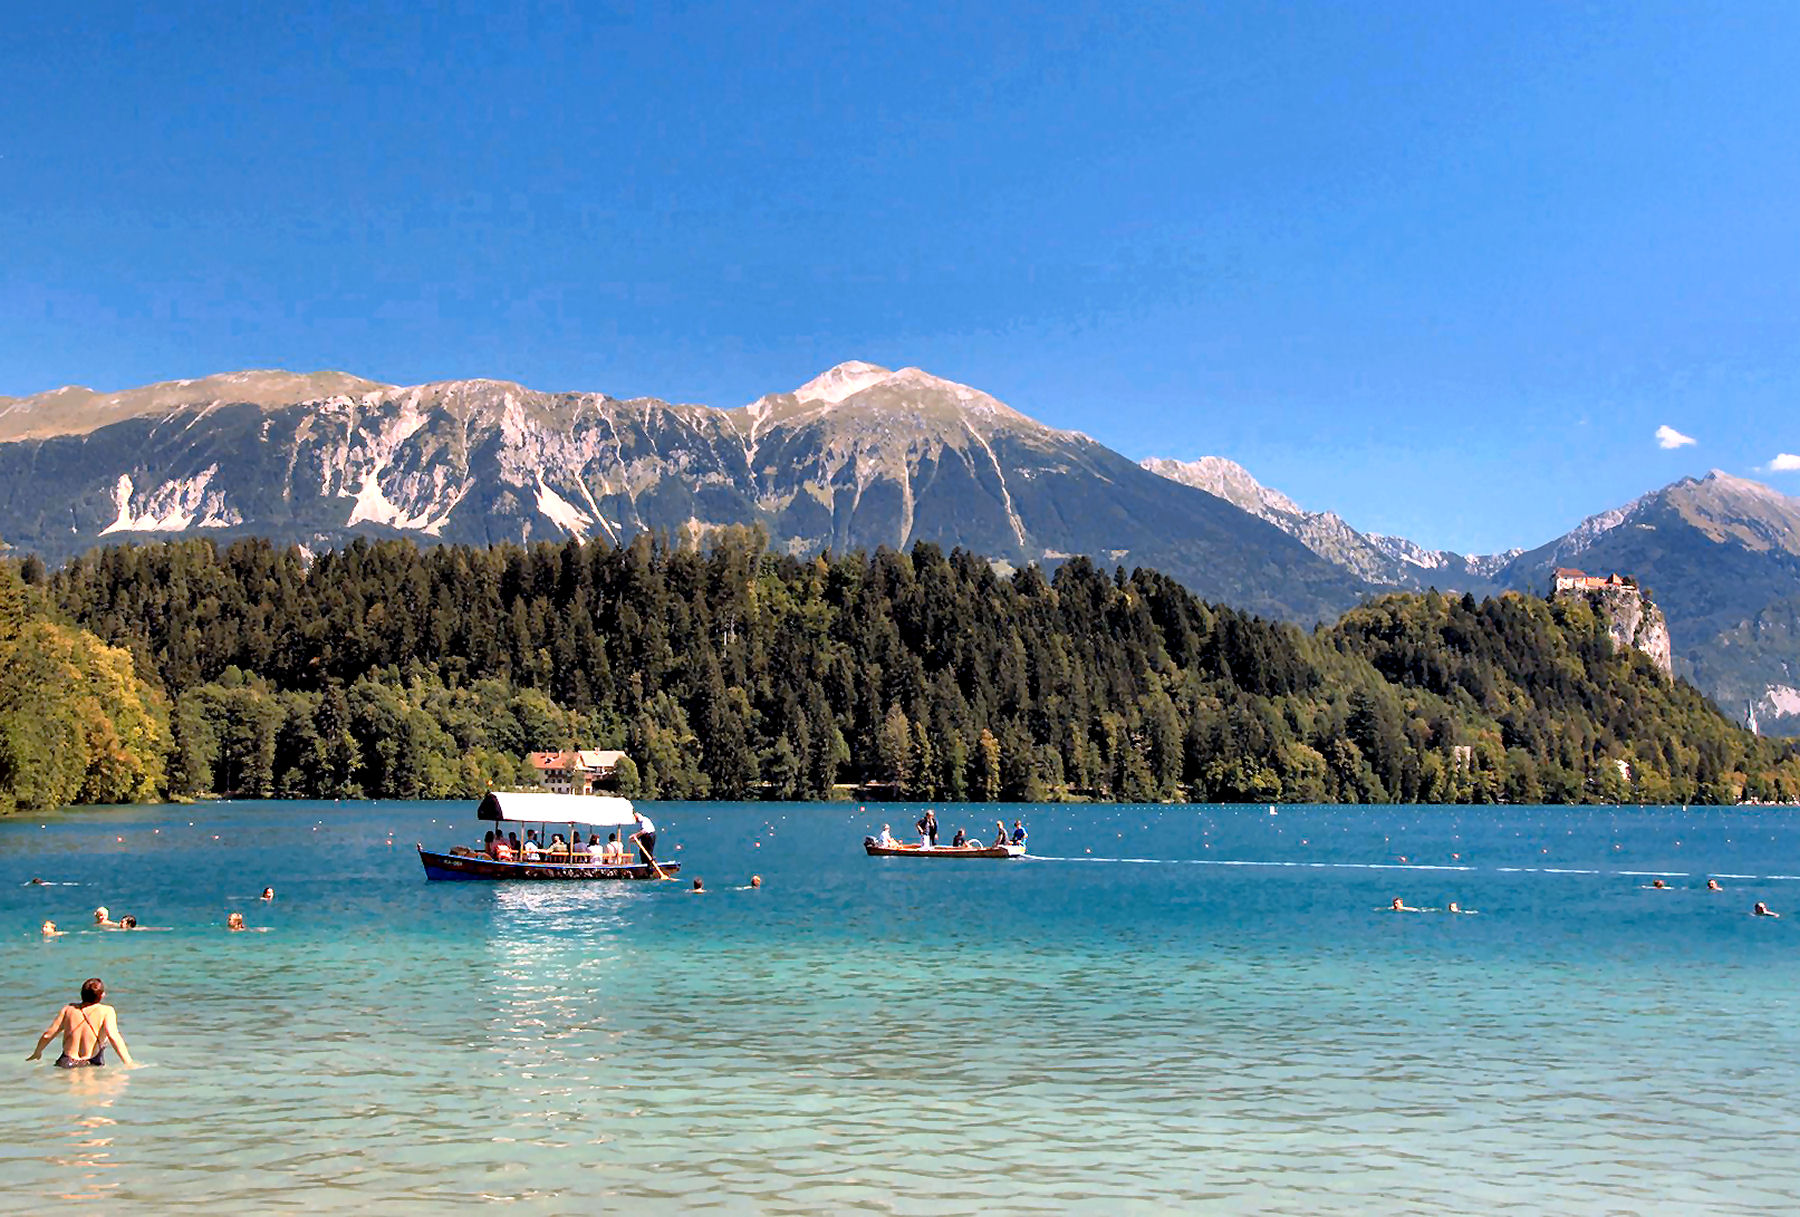 Swimming season in Lake Bled lasts from June to late September